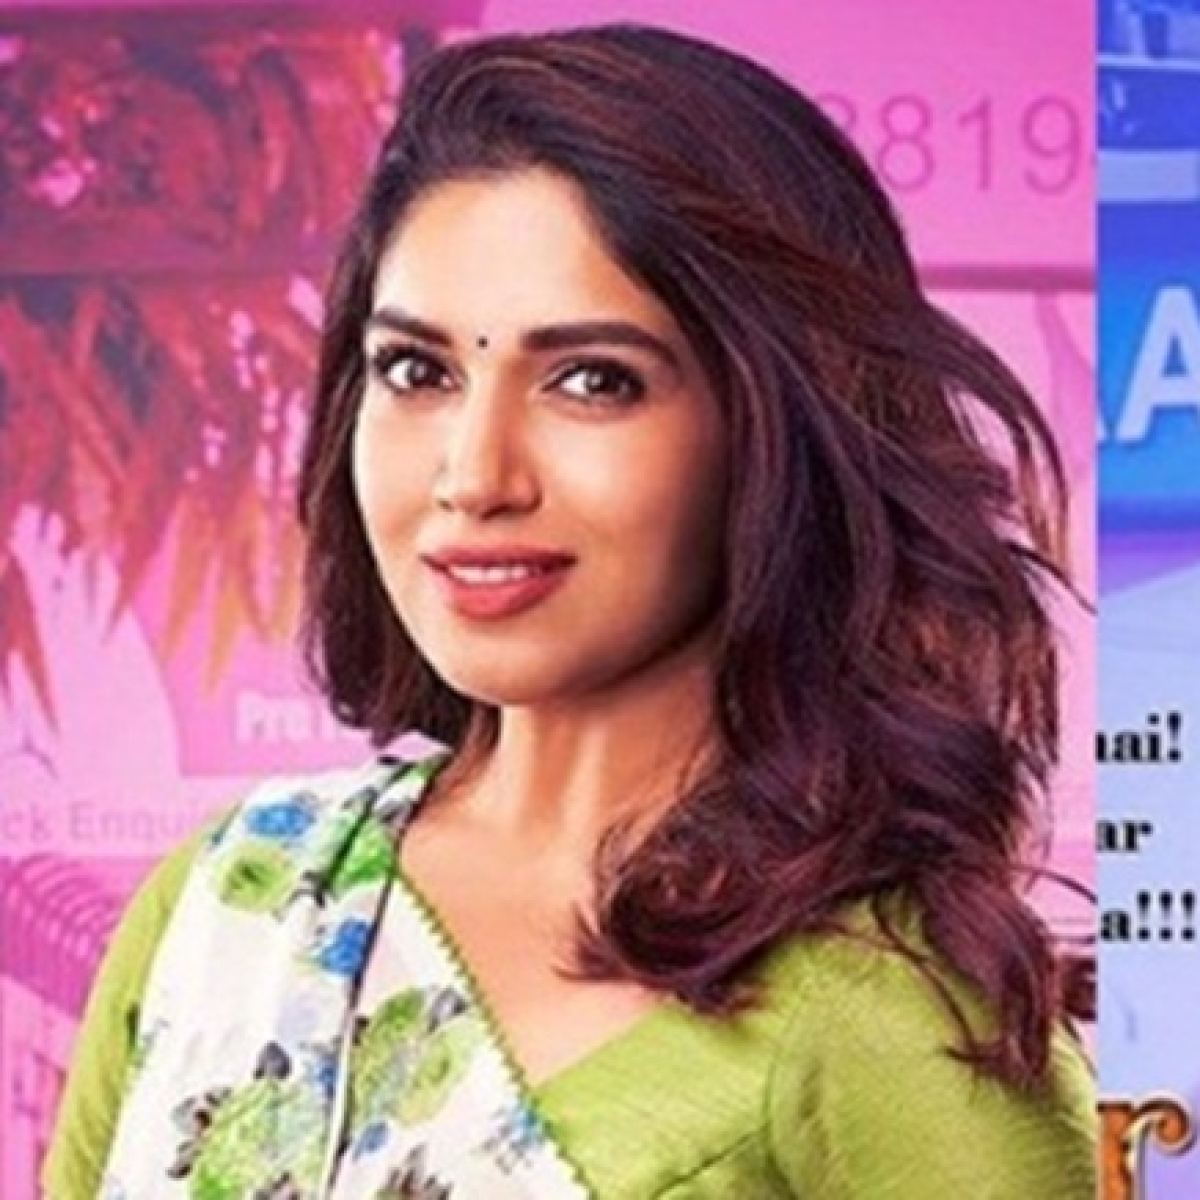 Pati Patni Aur Woh: Bhumi Pednekar and Ananya Panday share first look from movie